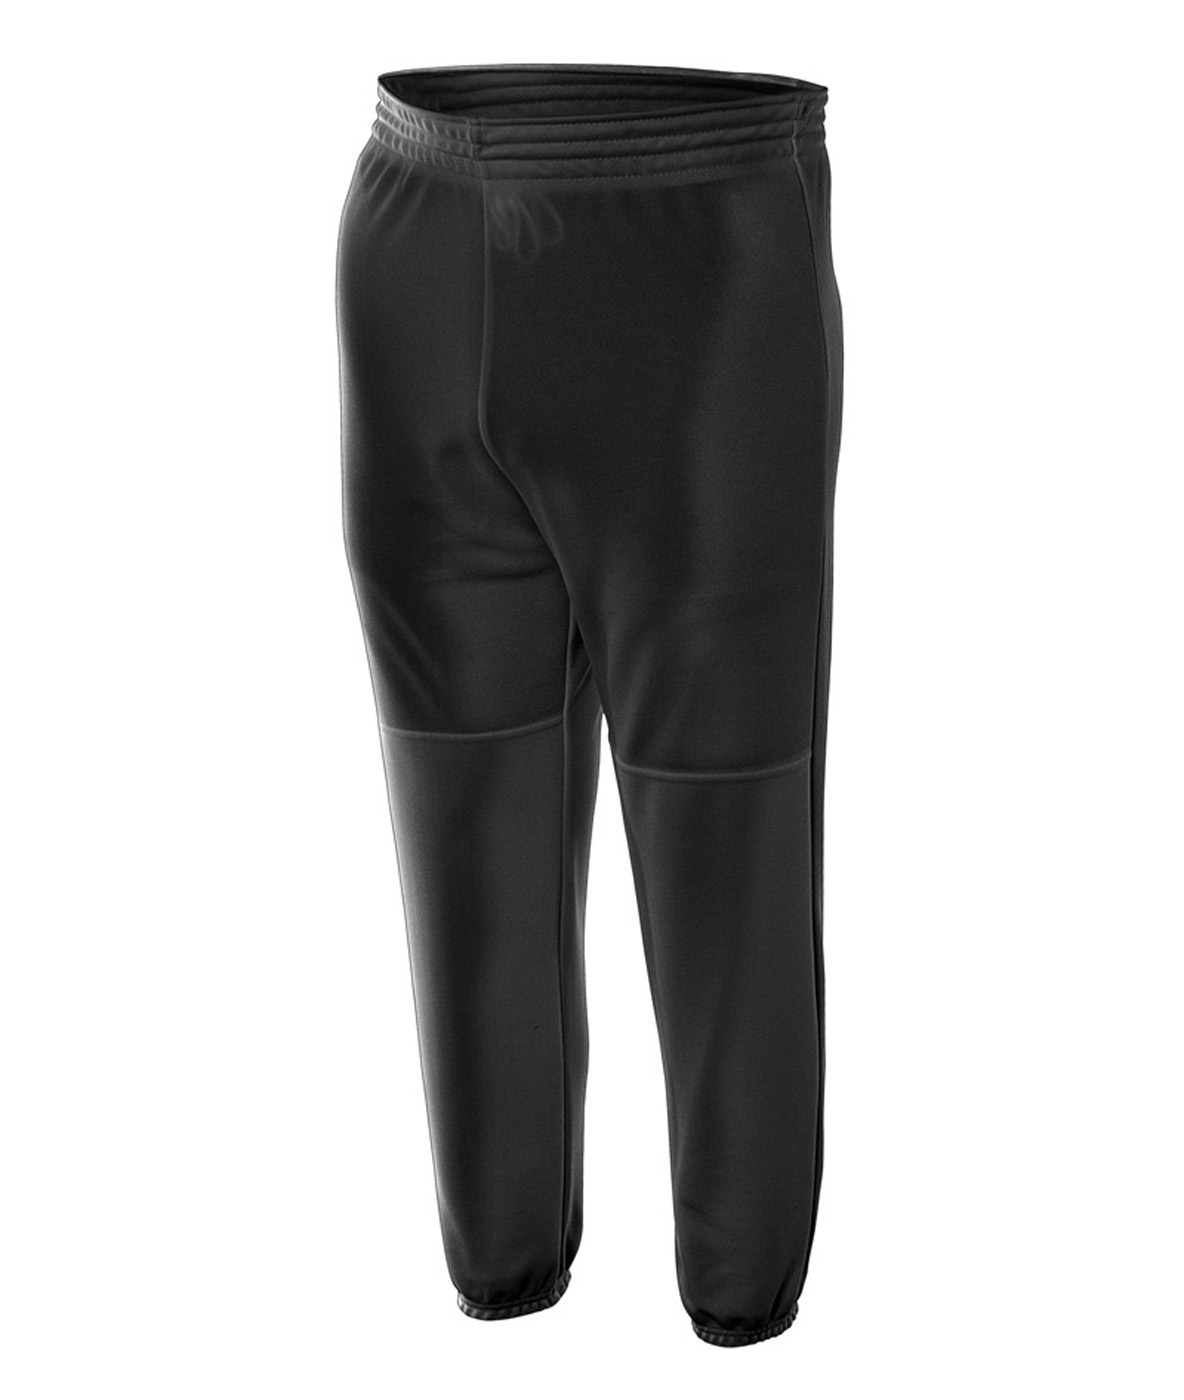 Pull-On Baseball Pant by A4